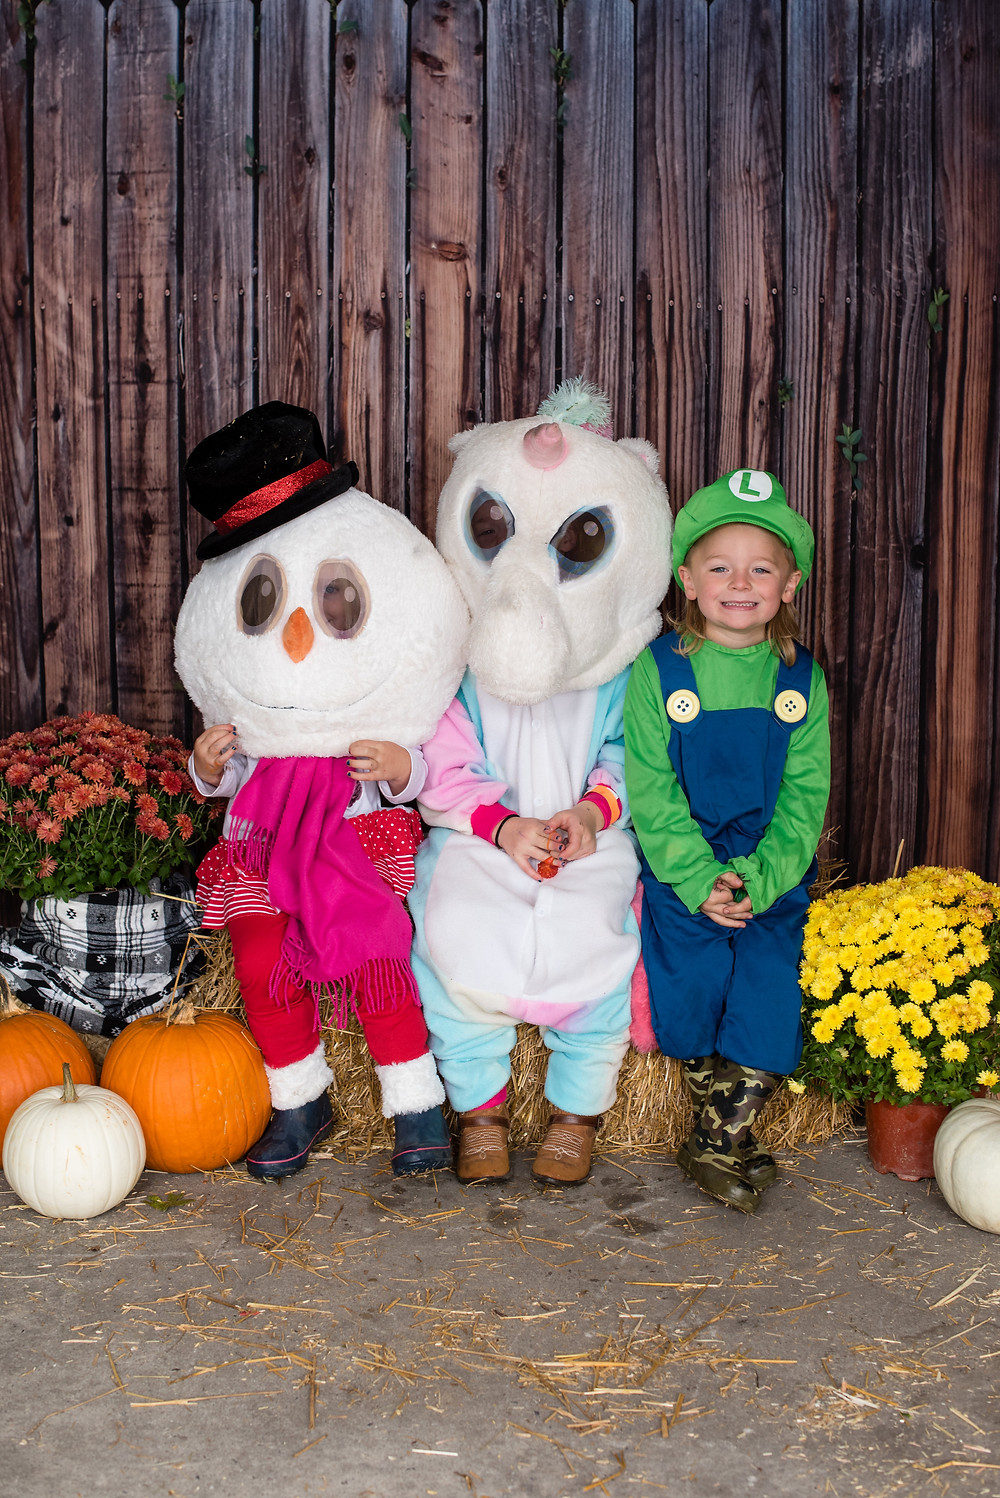 Group of costumed children on hay bales. One is wearing a snowman head, one is wearing a unicorn head and one is dressed as a Mario Brothers character